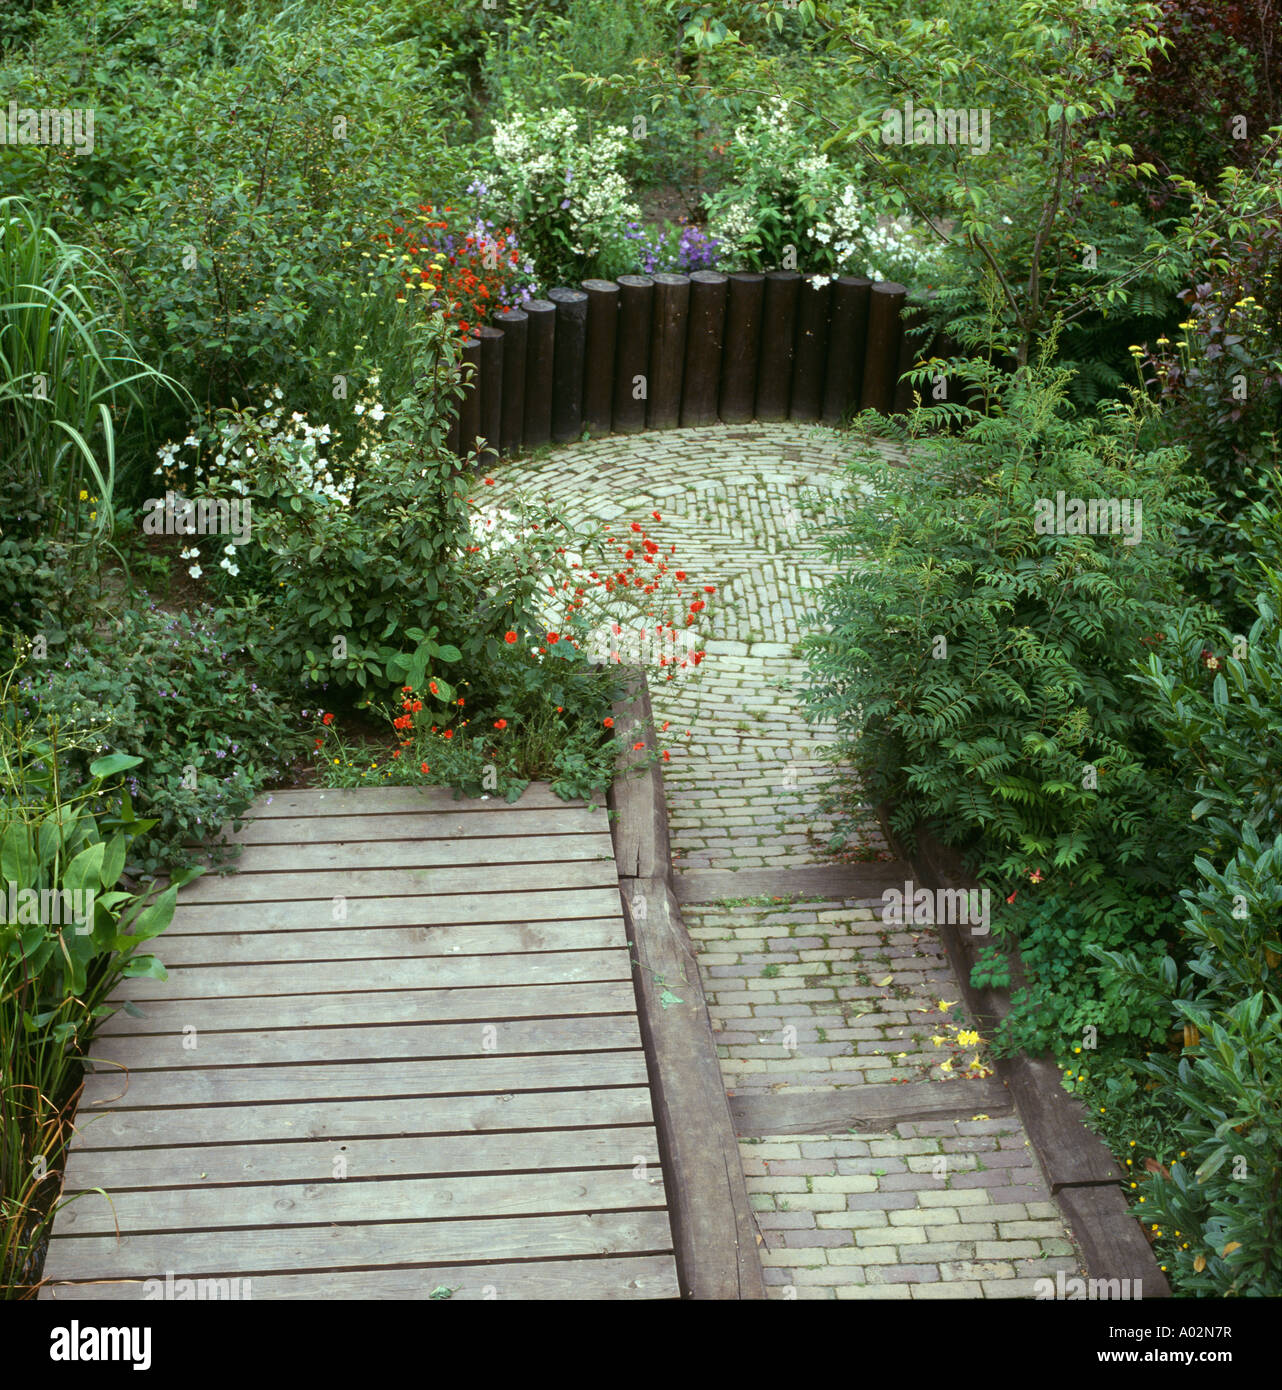 Paving And Wooden Decking Path To Sunken Patio   Stock Image